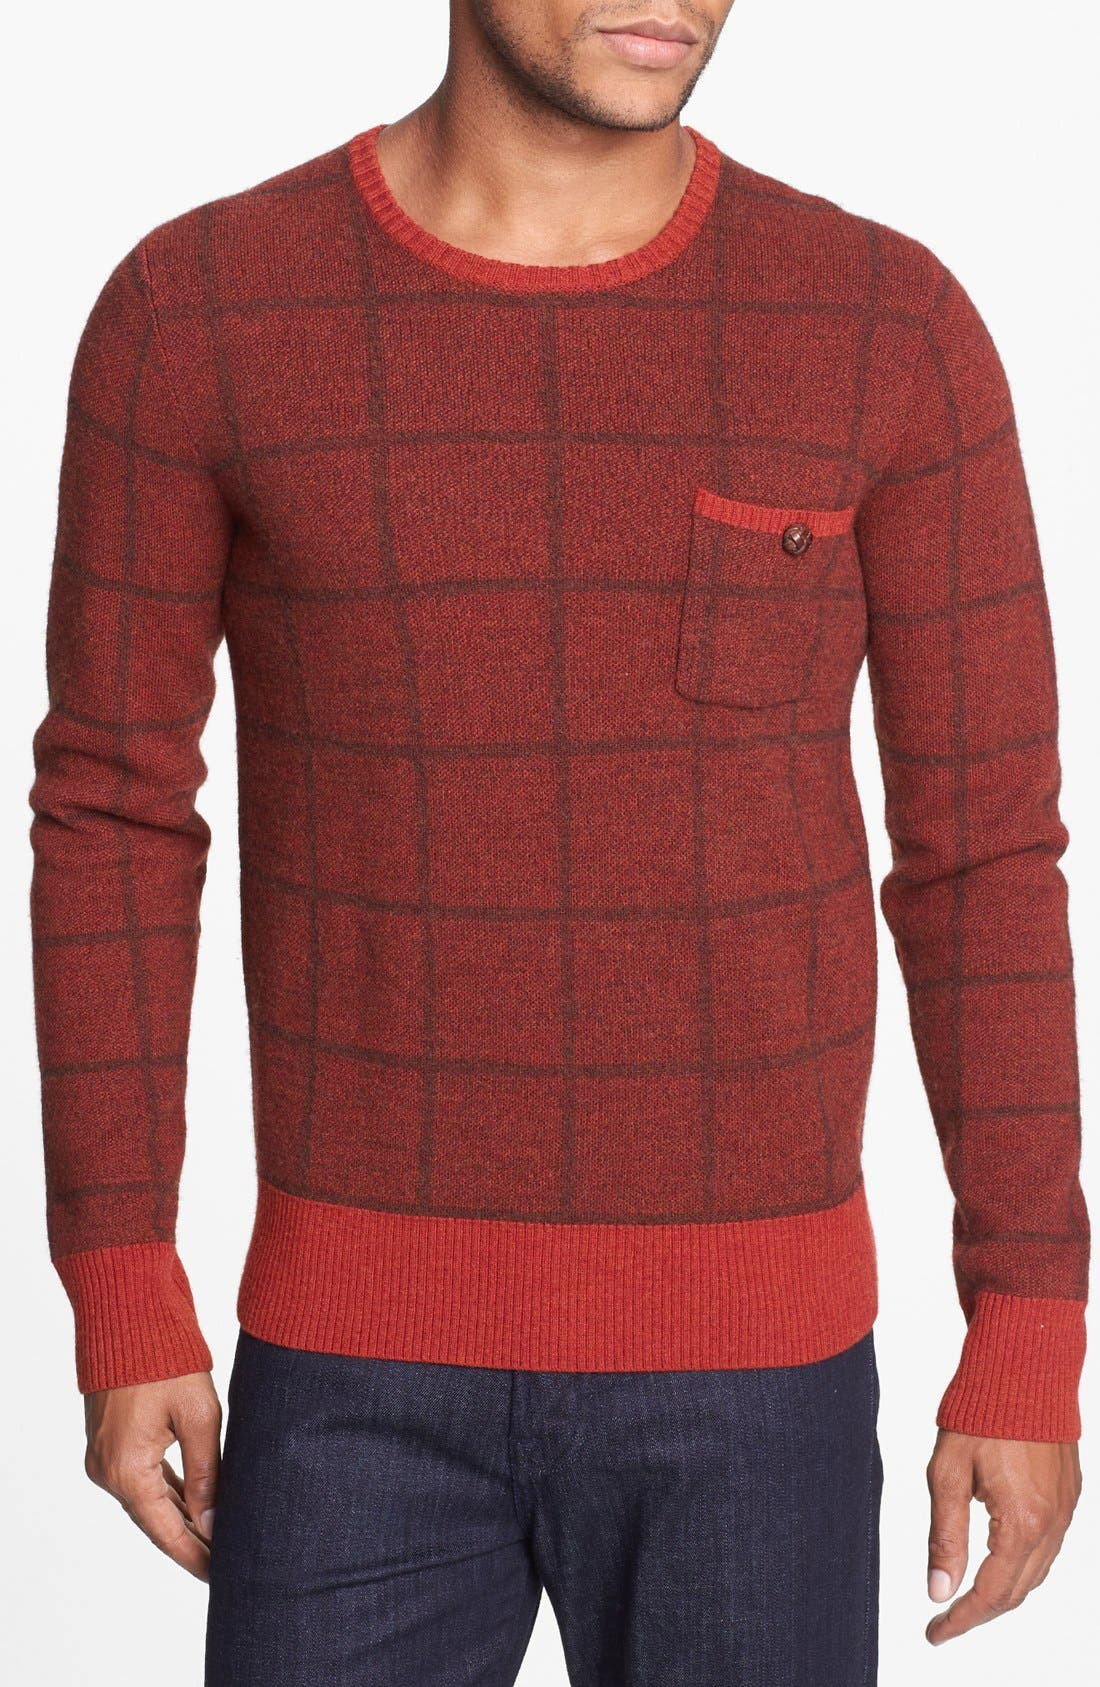 Alternate Image 1 Selected - J. Press York Street Windowpane Merino Wool Crewneck Sweater